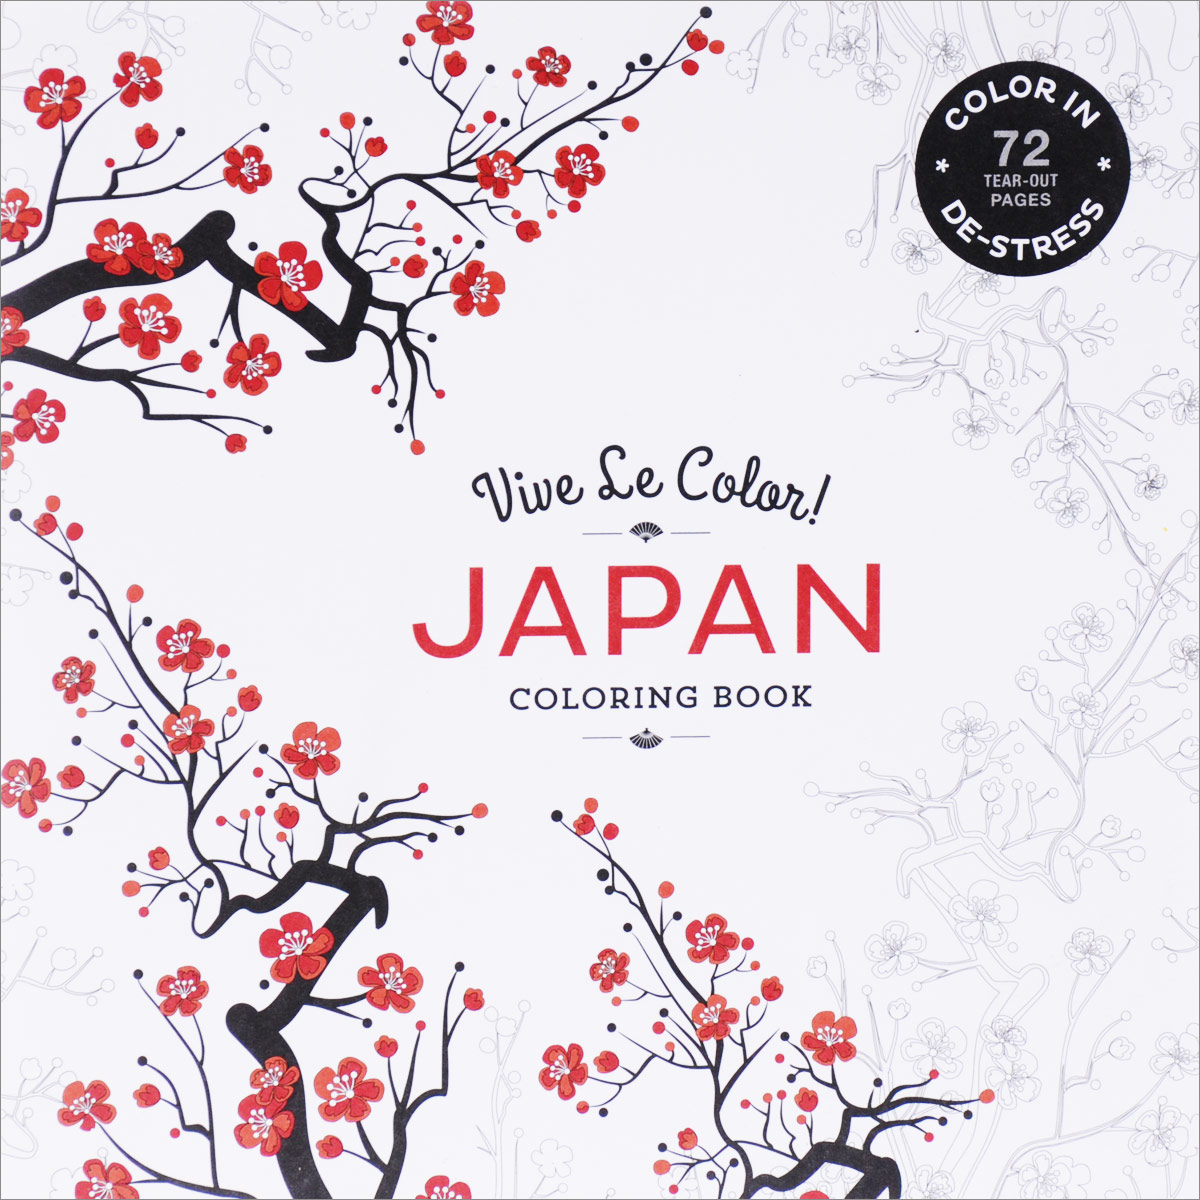 Japan: Coloring Book fashion a coloring book of designer looks and accessories